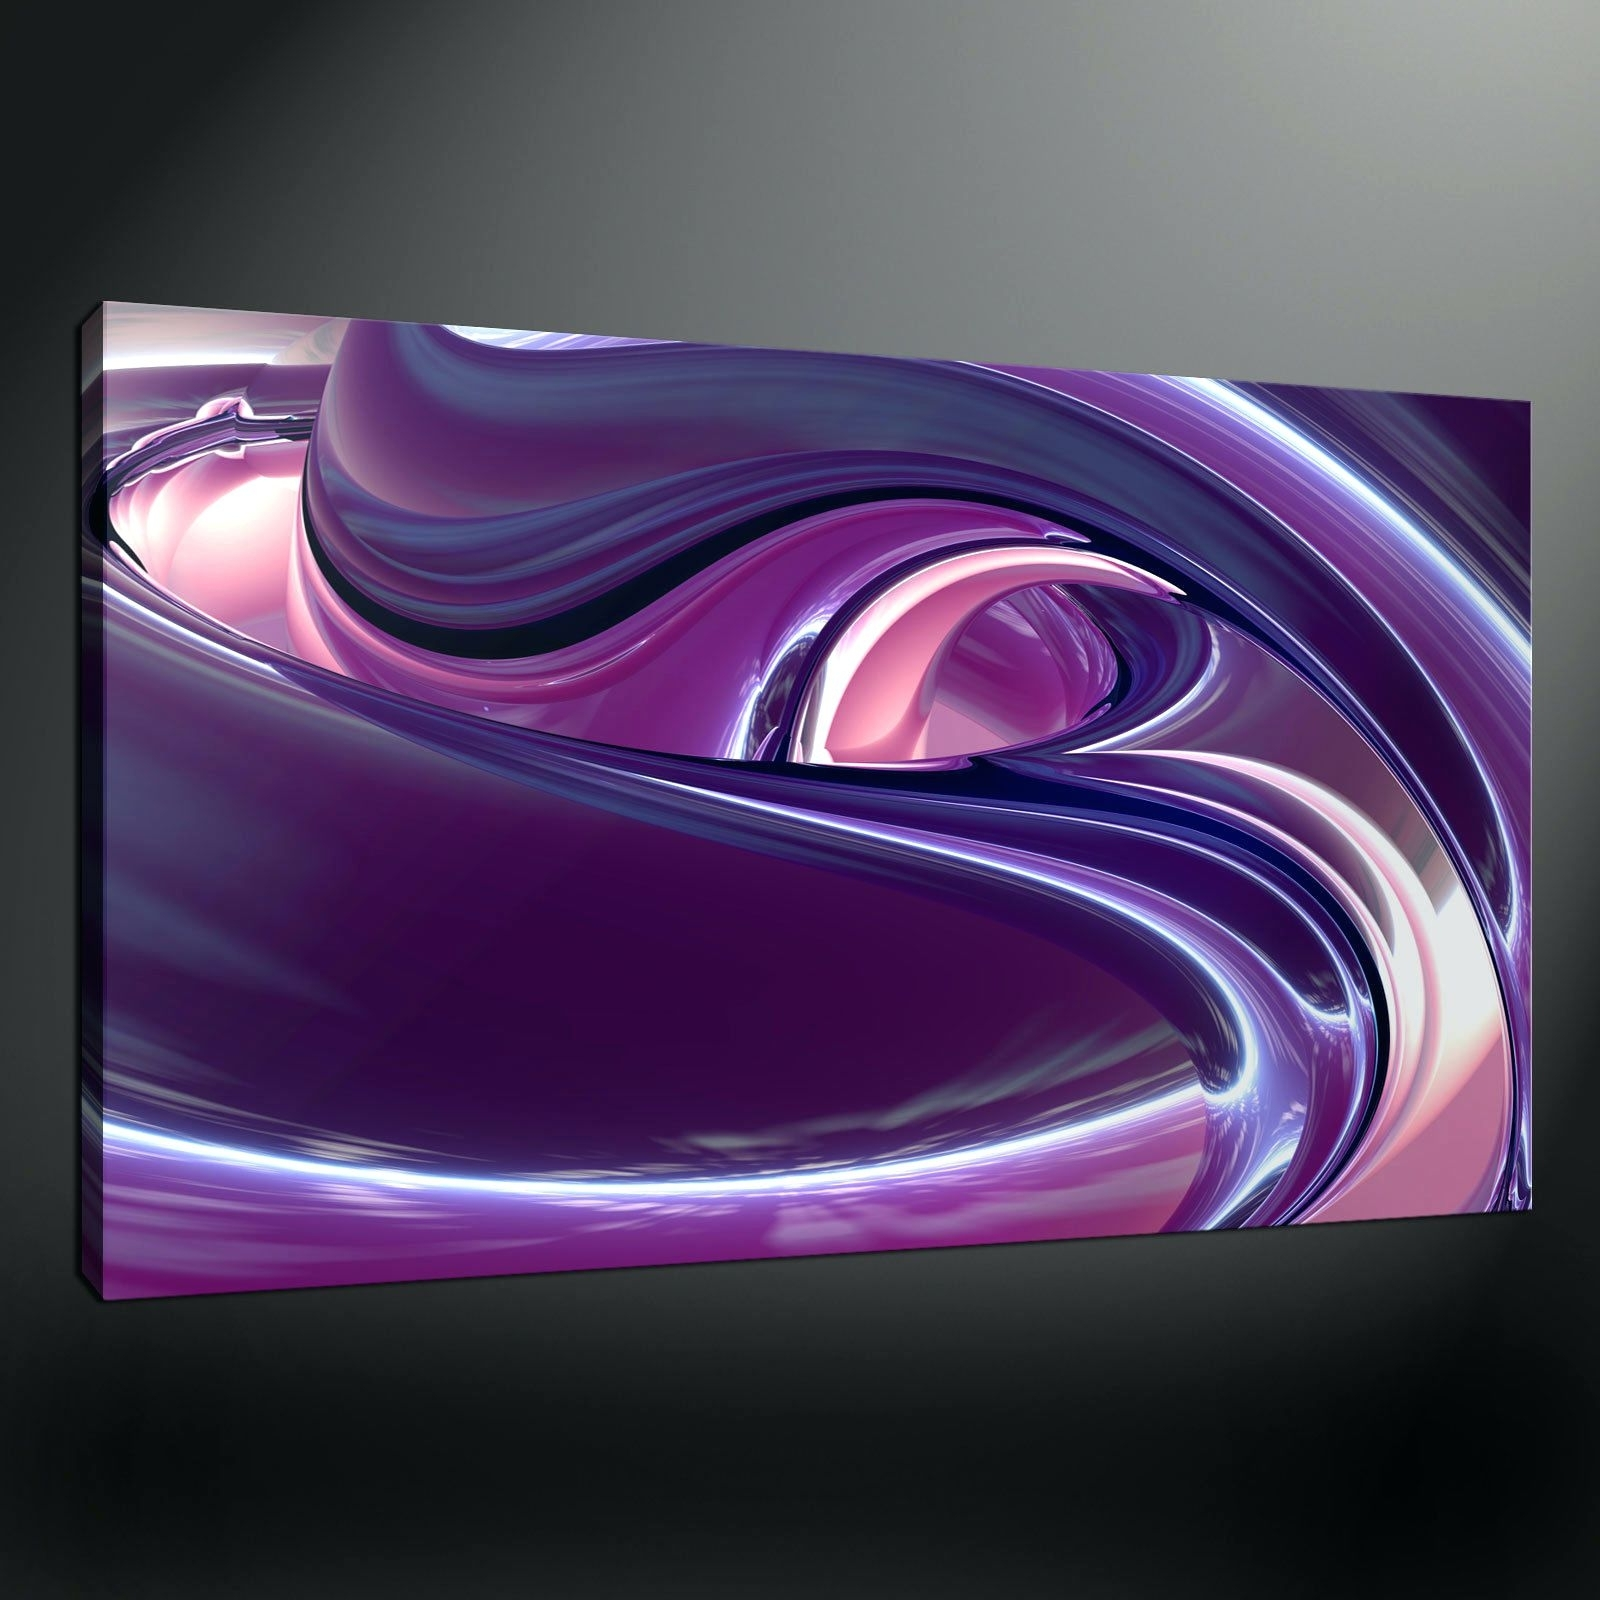 Canvas Wall Art In Purple Pertaining To Widely Used Wall Arts ~ Purple Flower Canvas Wall Art Purple Canvas Wall Art (View 4 of 15)